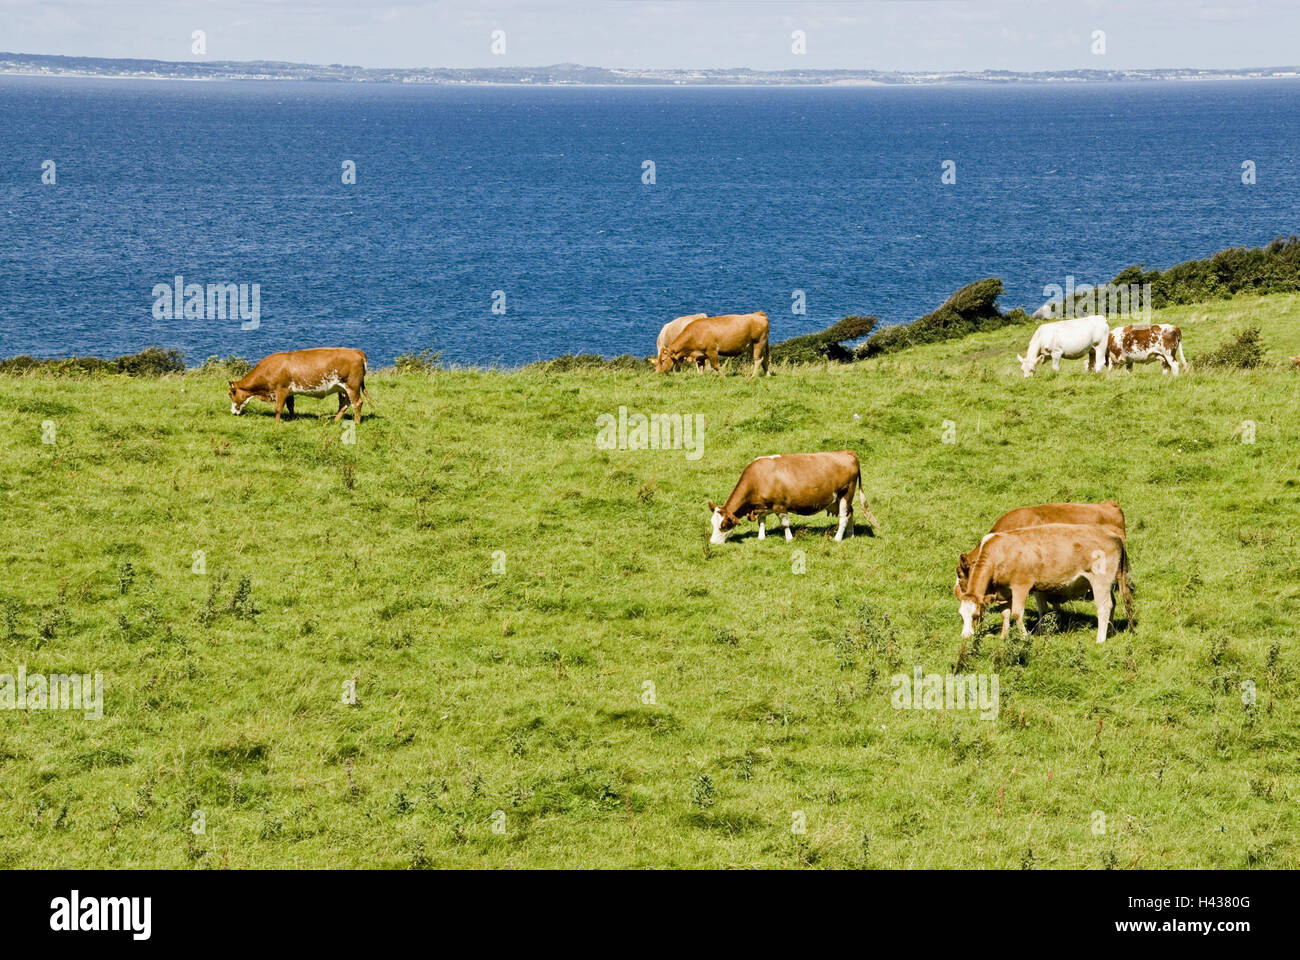 Ireland, Munster, Clare, Burren, pastures, cows, water, sea, coast, national park, nature reserve, pastureland, - Stock Image